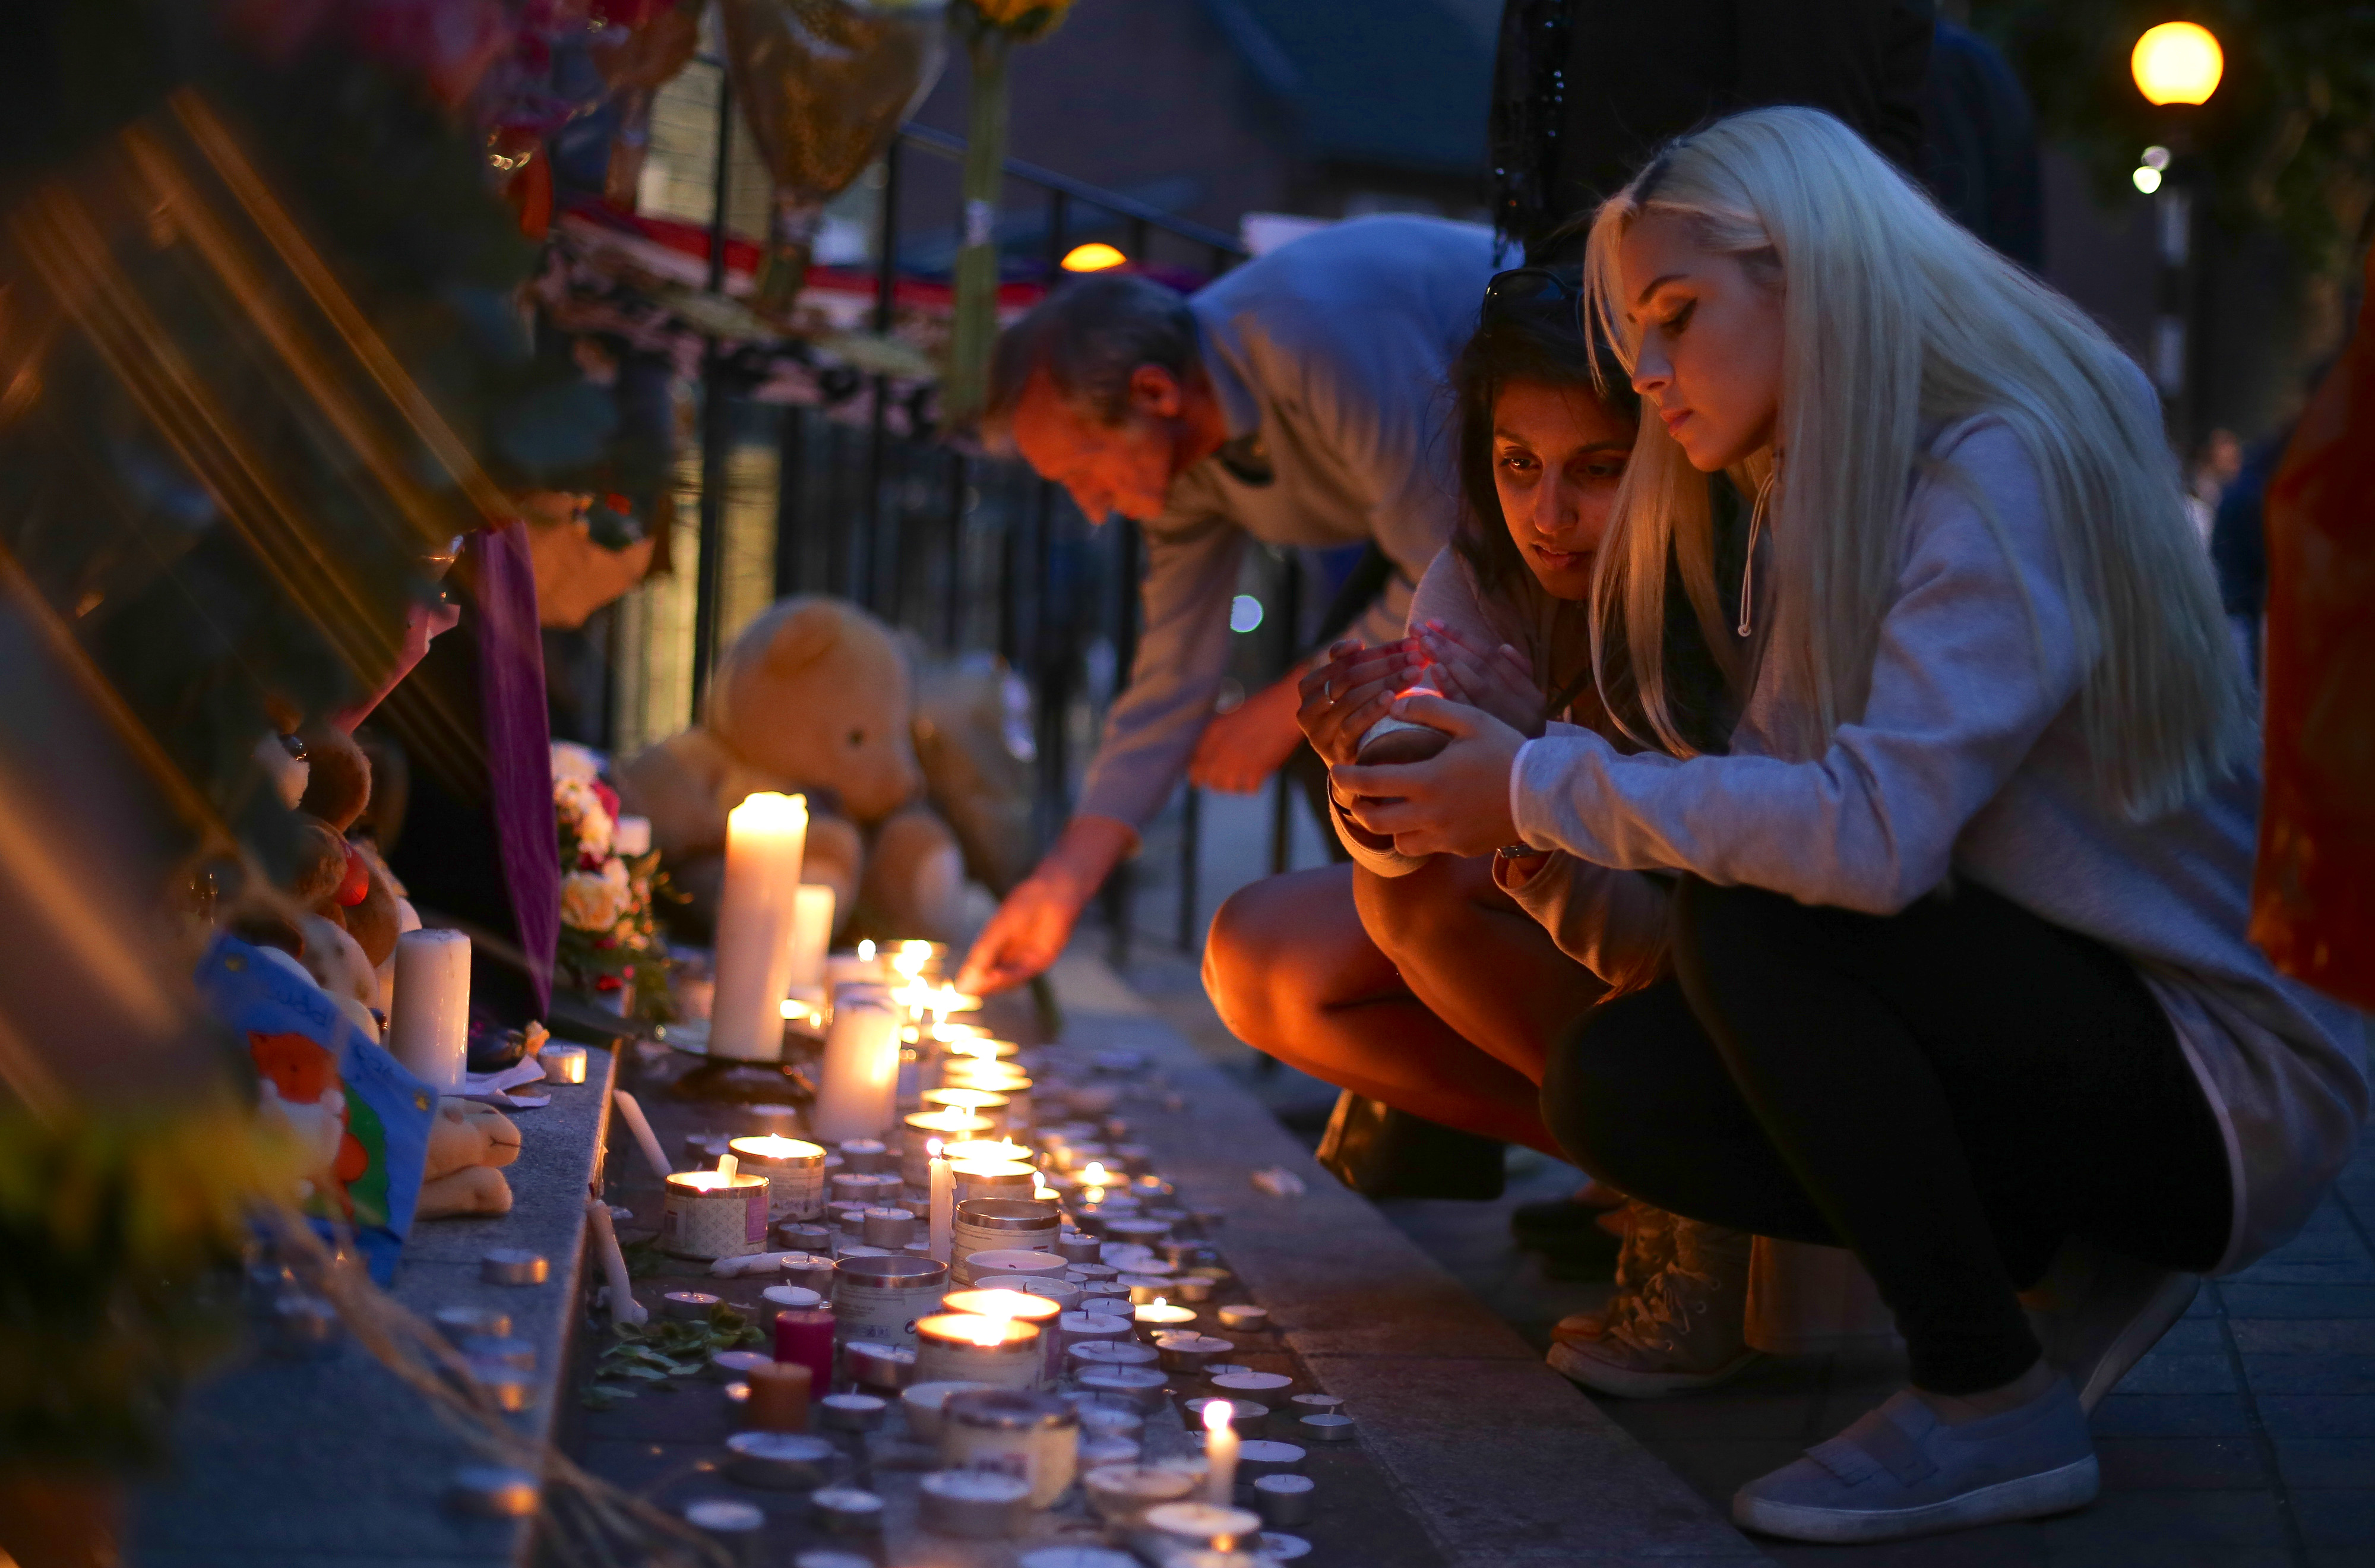 People light candles for a memorial outside Notting hill Methodist Church following the blaze at Grenfell Tower, a residential tower block in west London on June 15.  (DANIEL LEAL-OLIVAS/AFP/Getty Images)